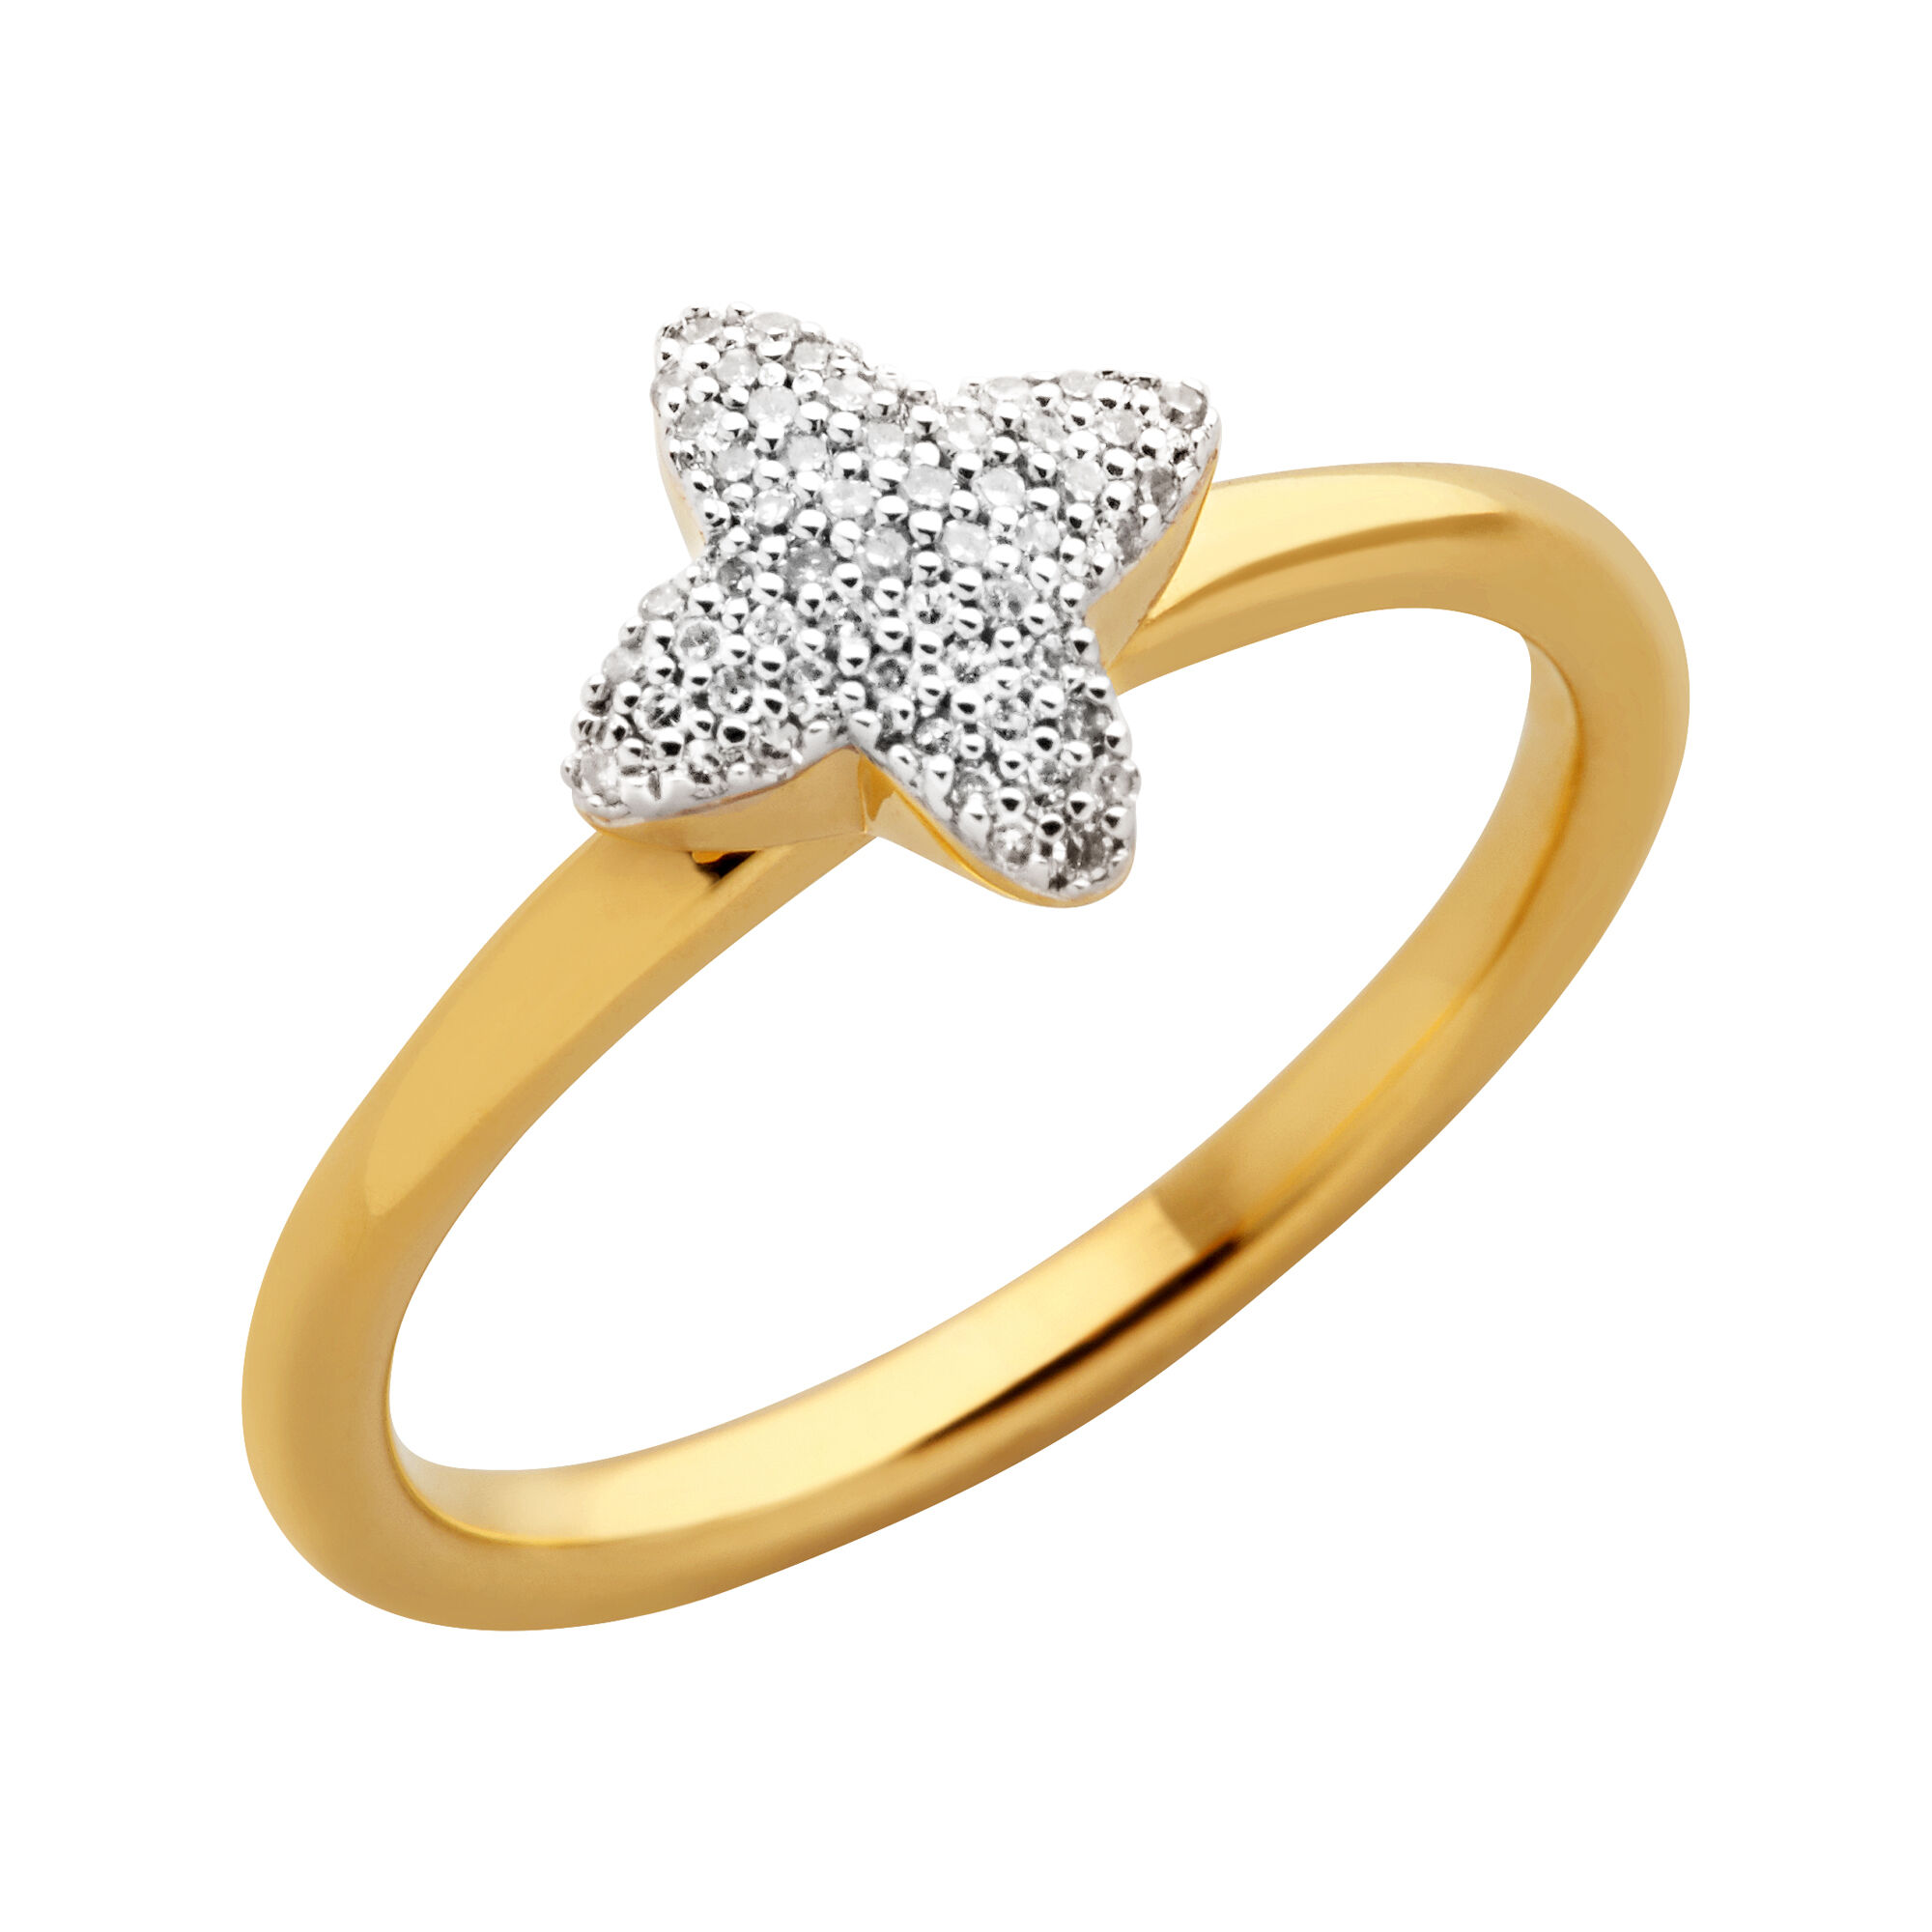 jewellery rings for gold com walmart women cp